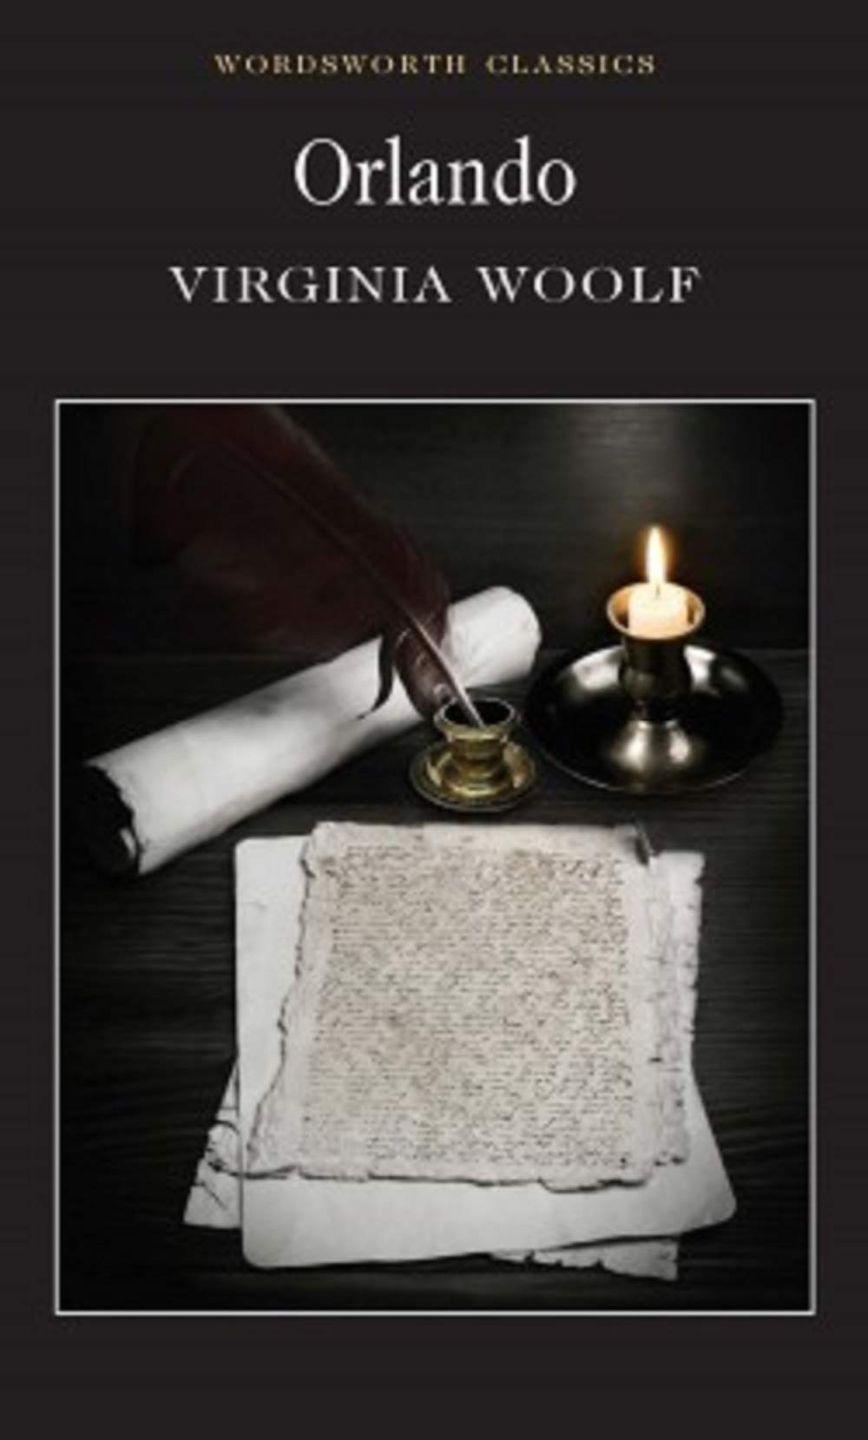 "<p>Virginia Woolf's 1928 novel Orlando covers gendered disputes and issues of conforming to society - it couldn't be more of its time. </p><p><a class=""link rapid-noclick-resp"" href=""https://www.amazon.co.uk/Orlando-Biography-Wordsworth-Virginia-Woolf/dp/1853262390/ref=sr_1_1?keywords=orlando+virgini&qid=1586876113&sr=8-1&tag=hearstuk-yahoo-21&ascsubtag=%5Bartid%7C1921.g.32141605%5Bsrc%7Cyahoo-uk"" rel=""nofollow noopener"" target=""_blank"" data-ylk=""slk:SHOP NOW"">SHOP NOW</a></p>"